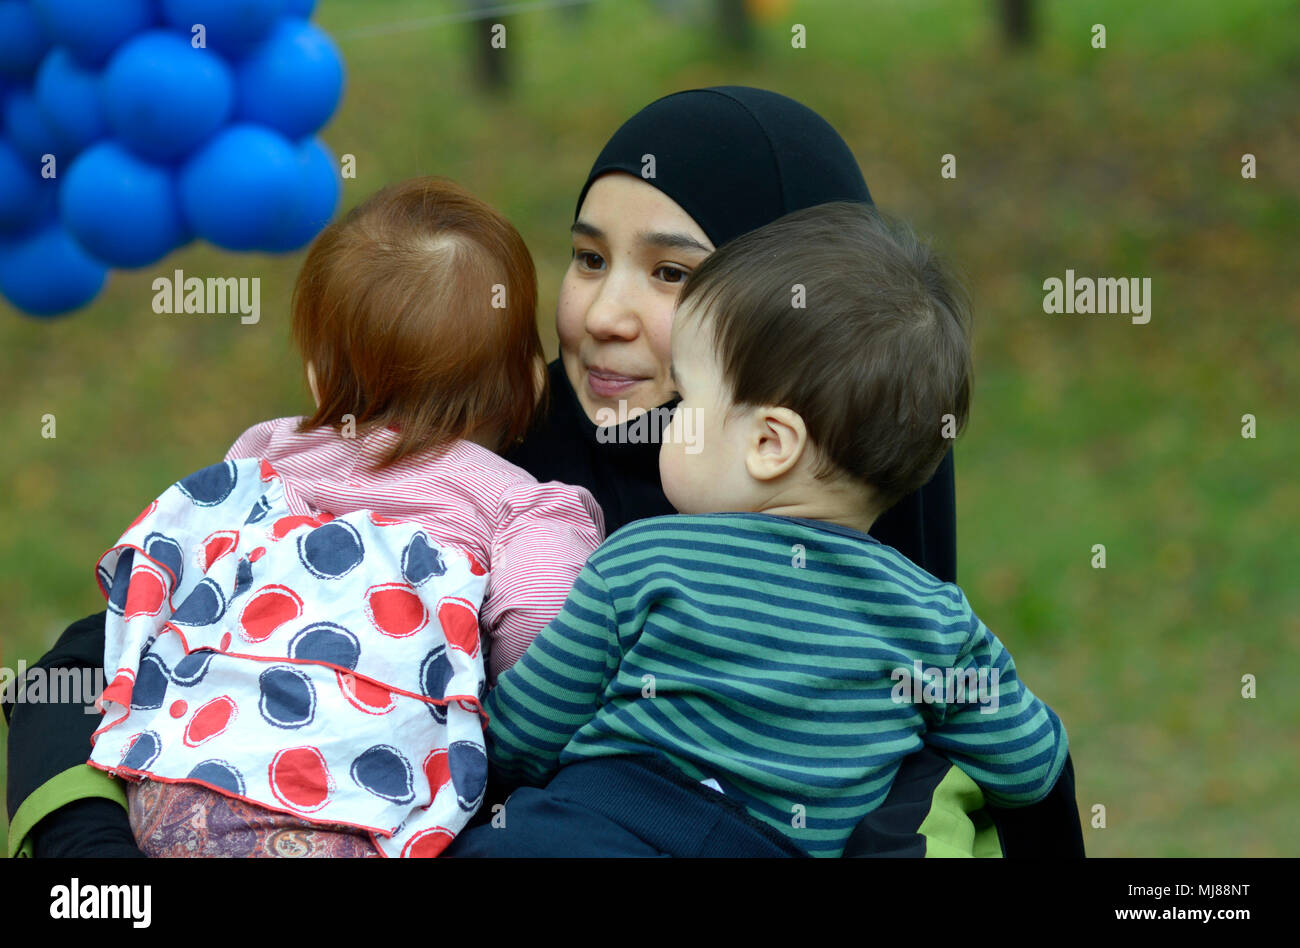 Muslim woman in hijabs carrying  baby on her arms. Celebration of Hidirellez (festival of arrival of spring).Kiev, Ukraine - Stock Image